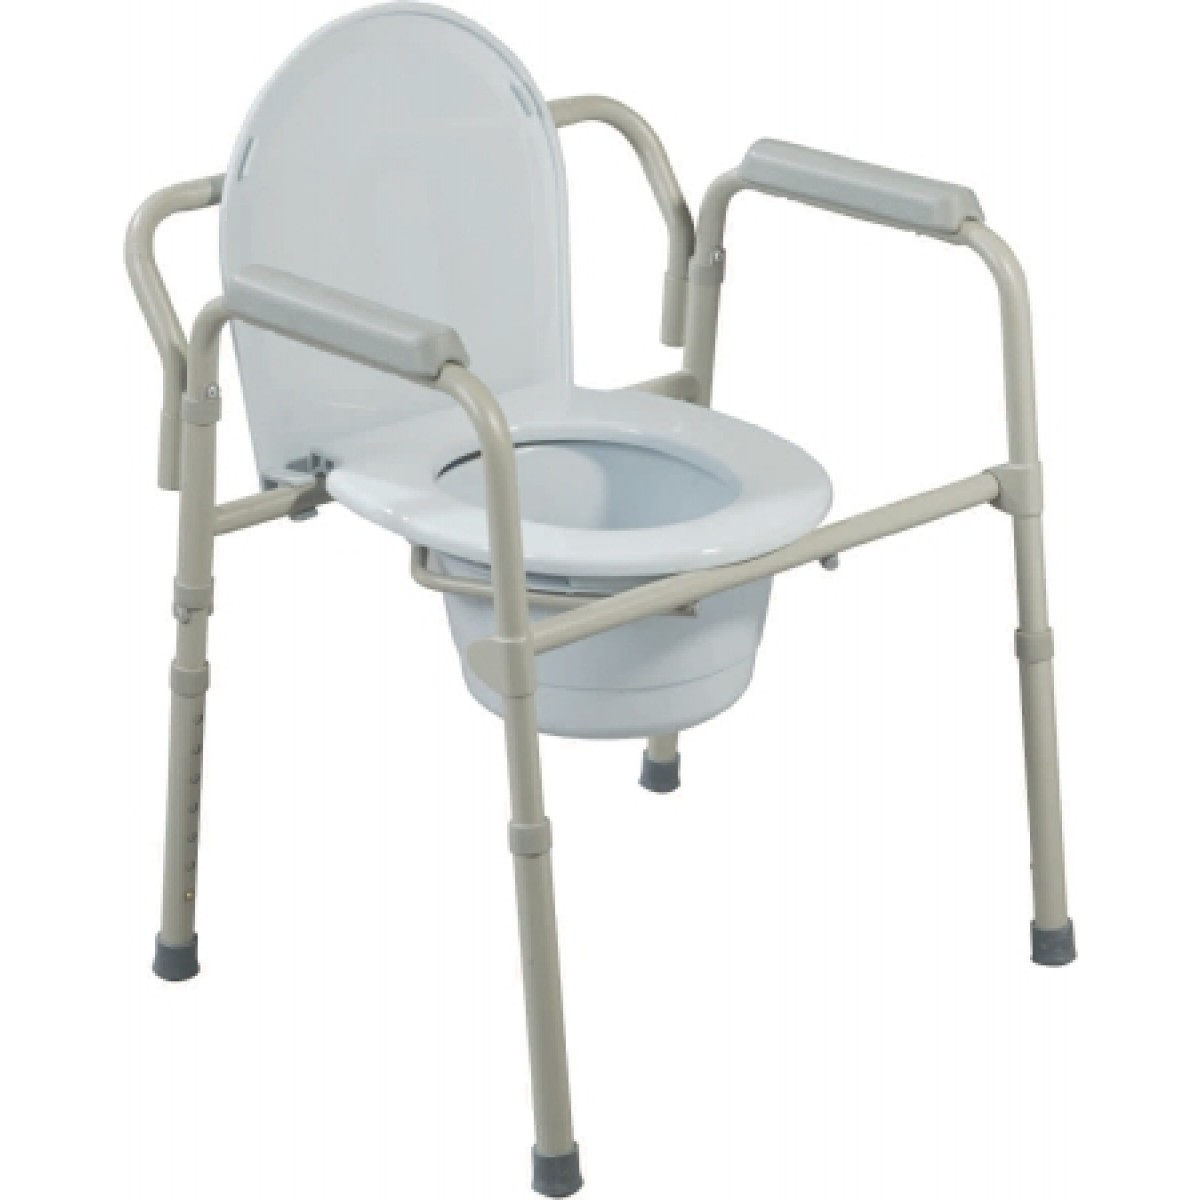 Folding Steel Commode 16.5 to 22.5 Inch - 11148N-4